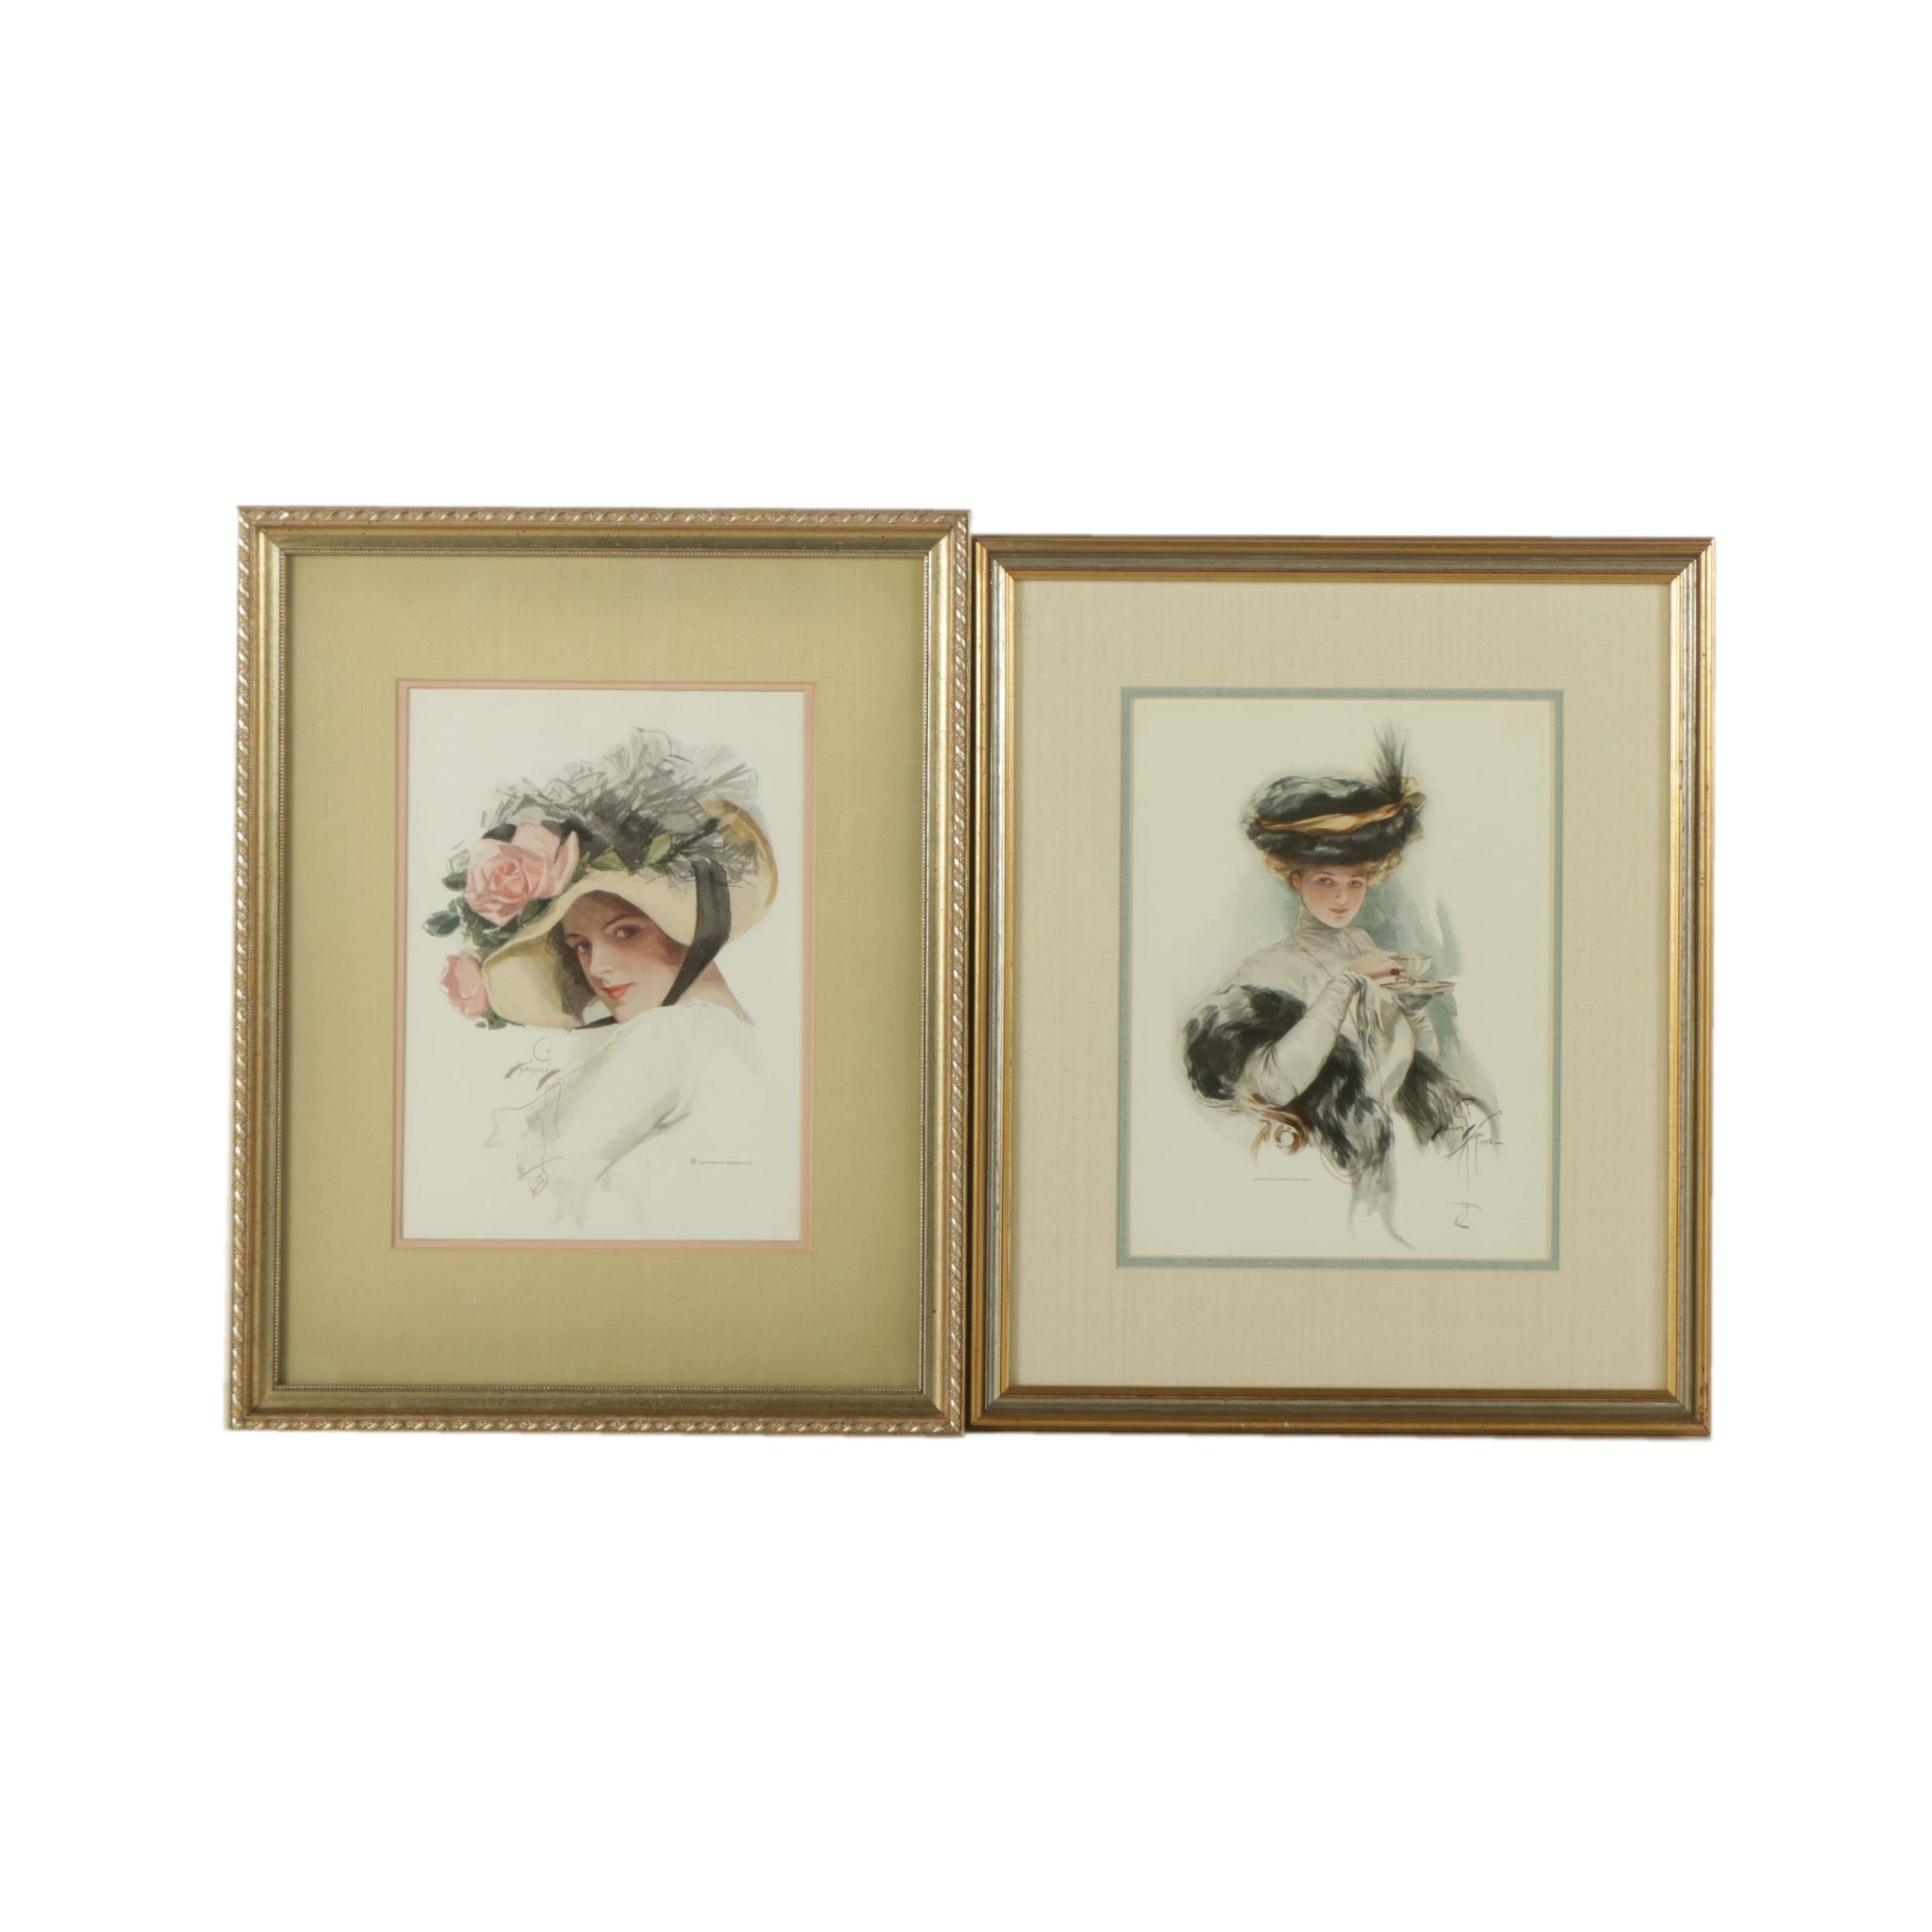 Pair of Offset Lithographs on Paper of Portraits